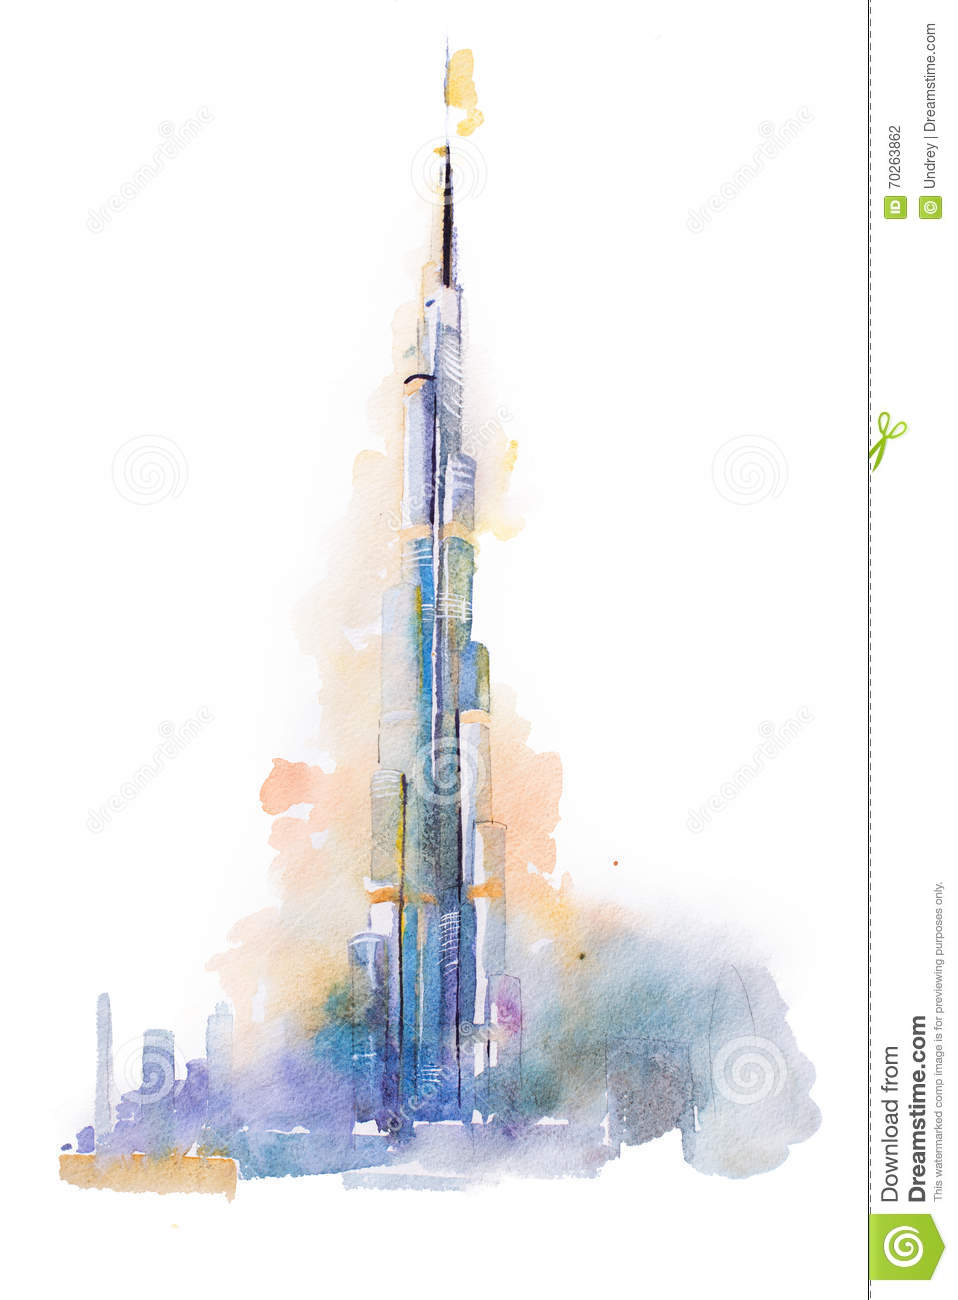 Watercolor drawing of burj khalifa tower in dubai stock for Burj khalifa sketch